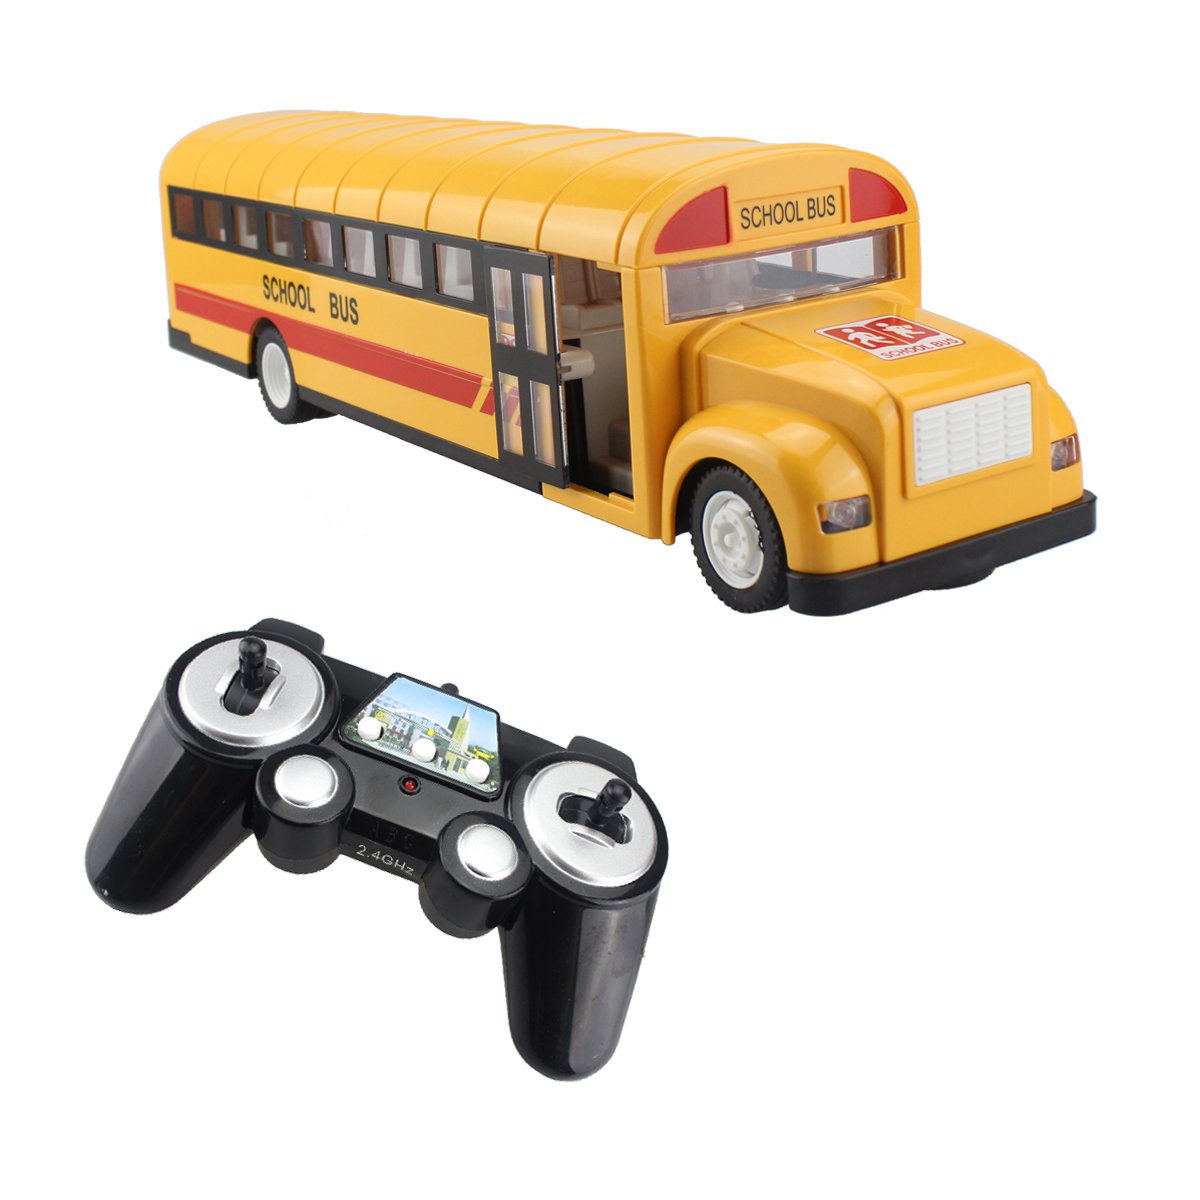 fisca RC School Bus Remote Control Car Vehicles